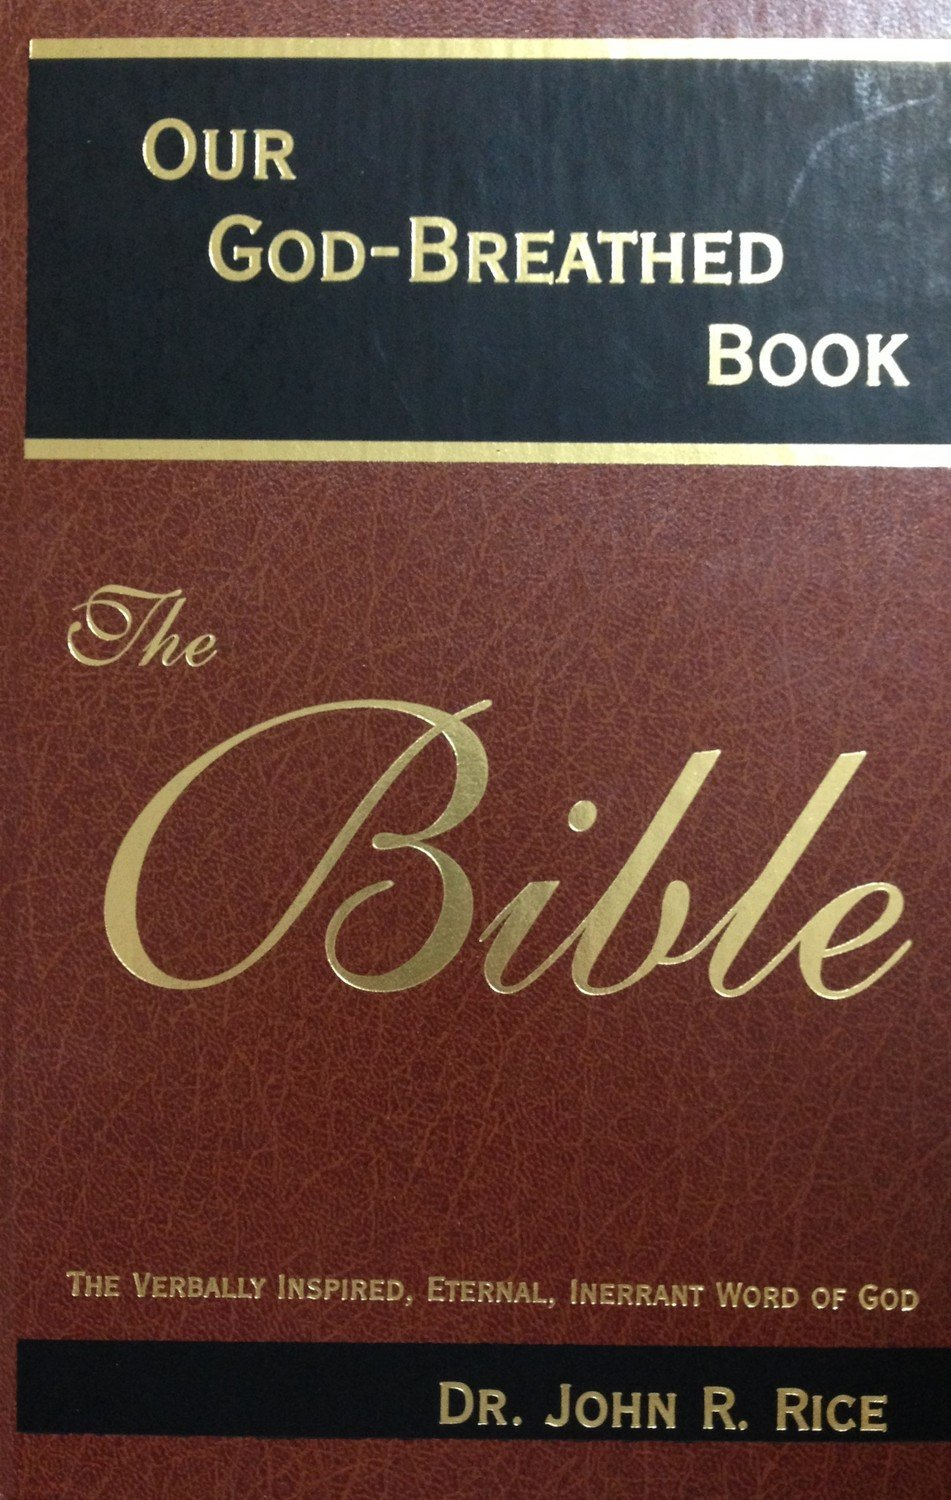 Our God-Breathed Book - The Bible by Dr. John R, Rice